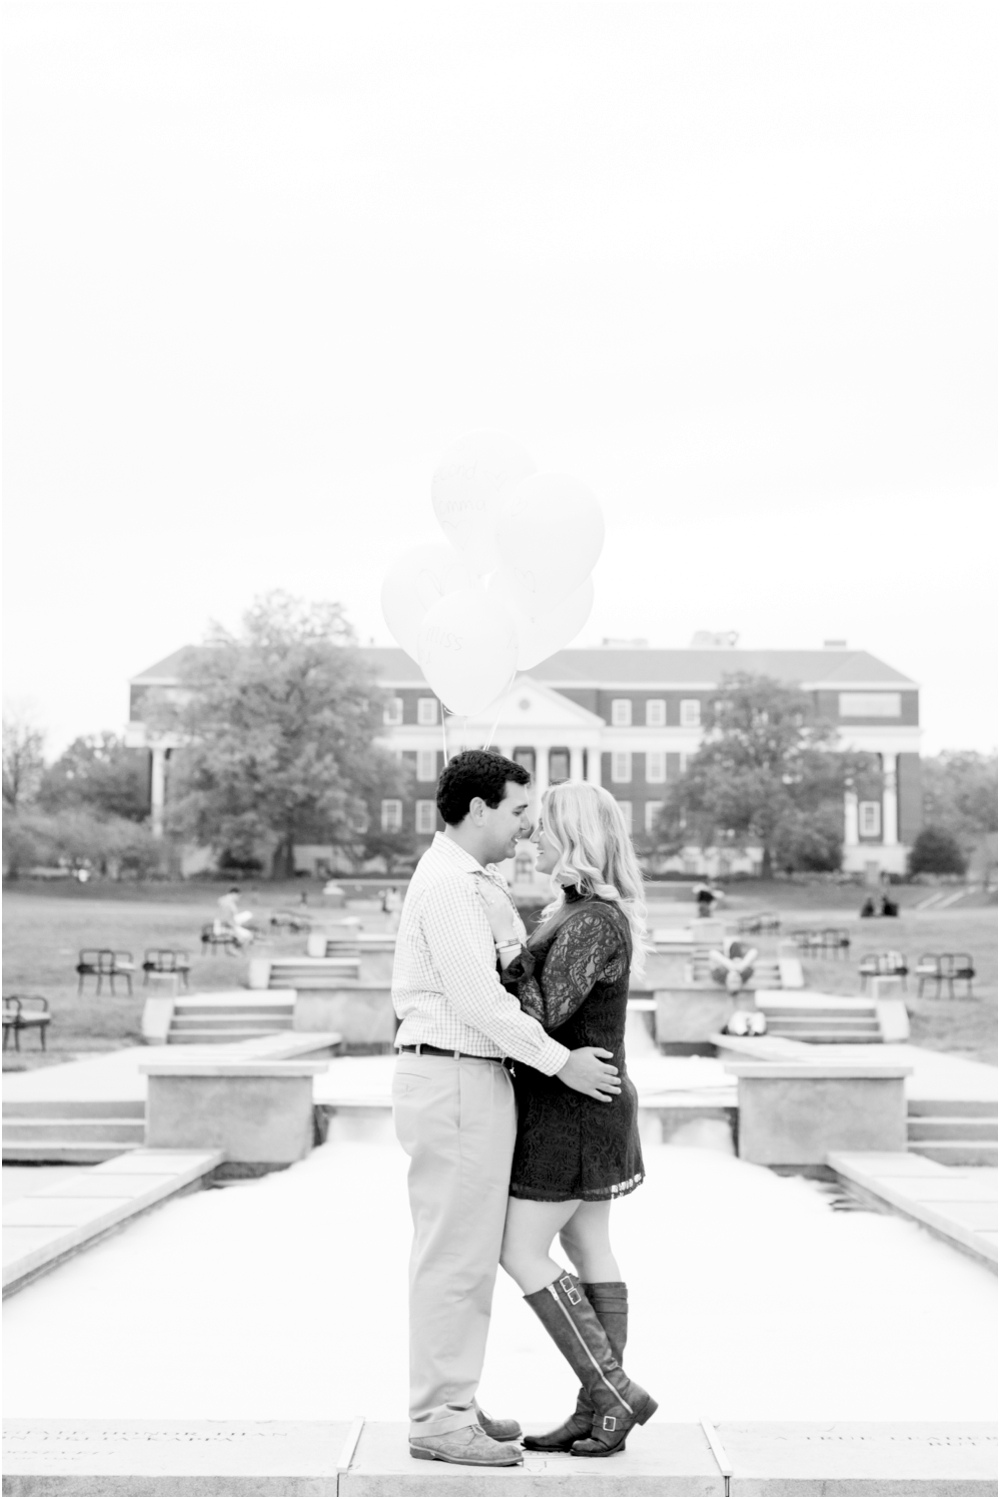 torie chris university of maryland engagement session living radiant photography_0024.jpg